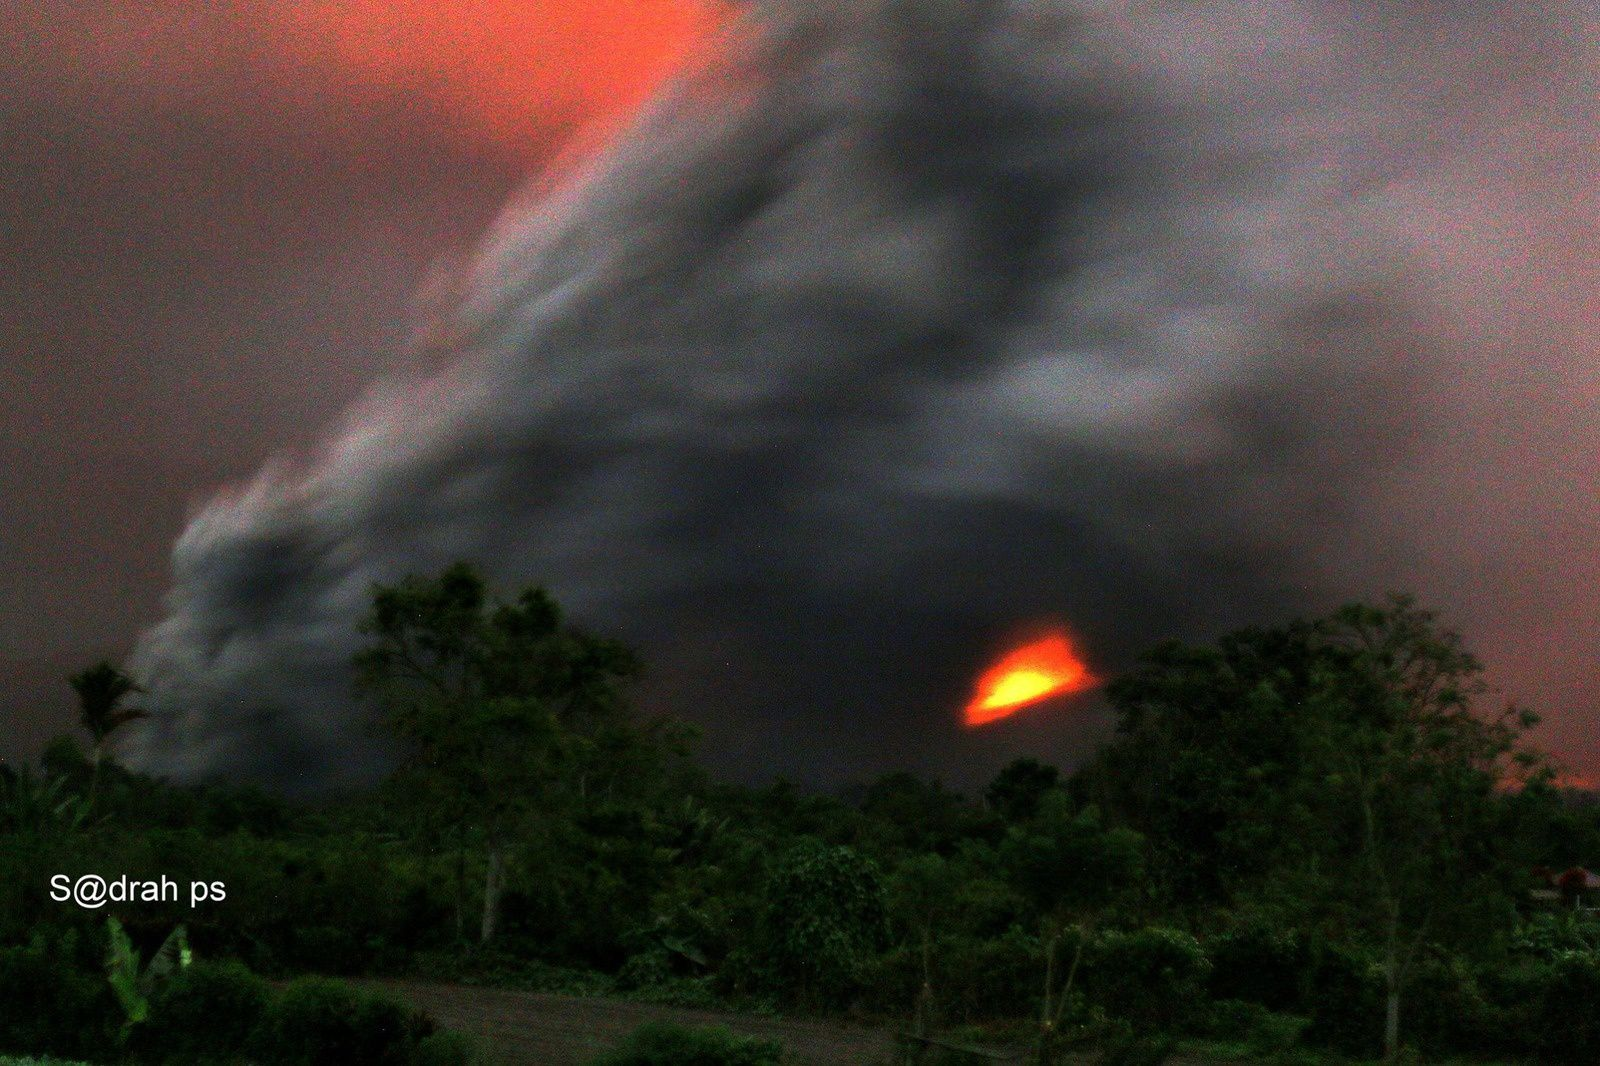 Sinabung - the 09.04.2017 / 23h12 - photo Sadrah Peranginangin / via Beidar Sinabung